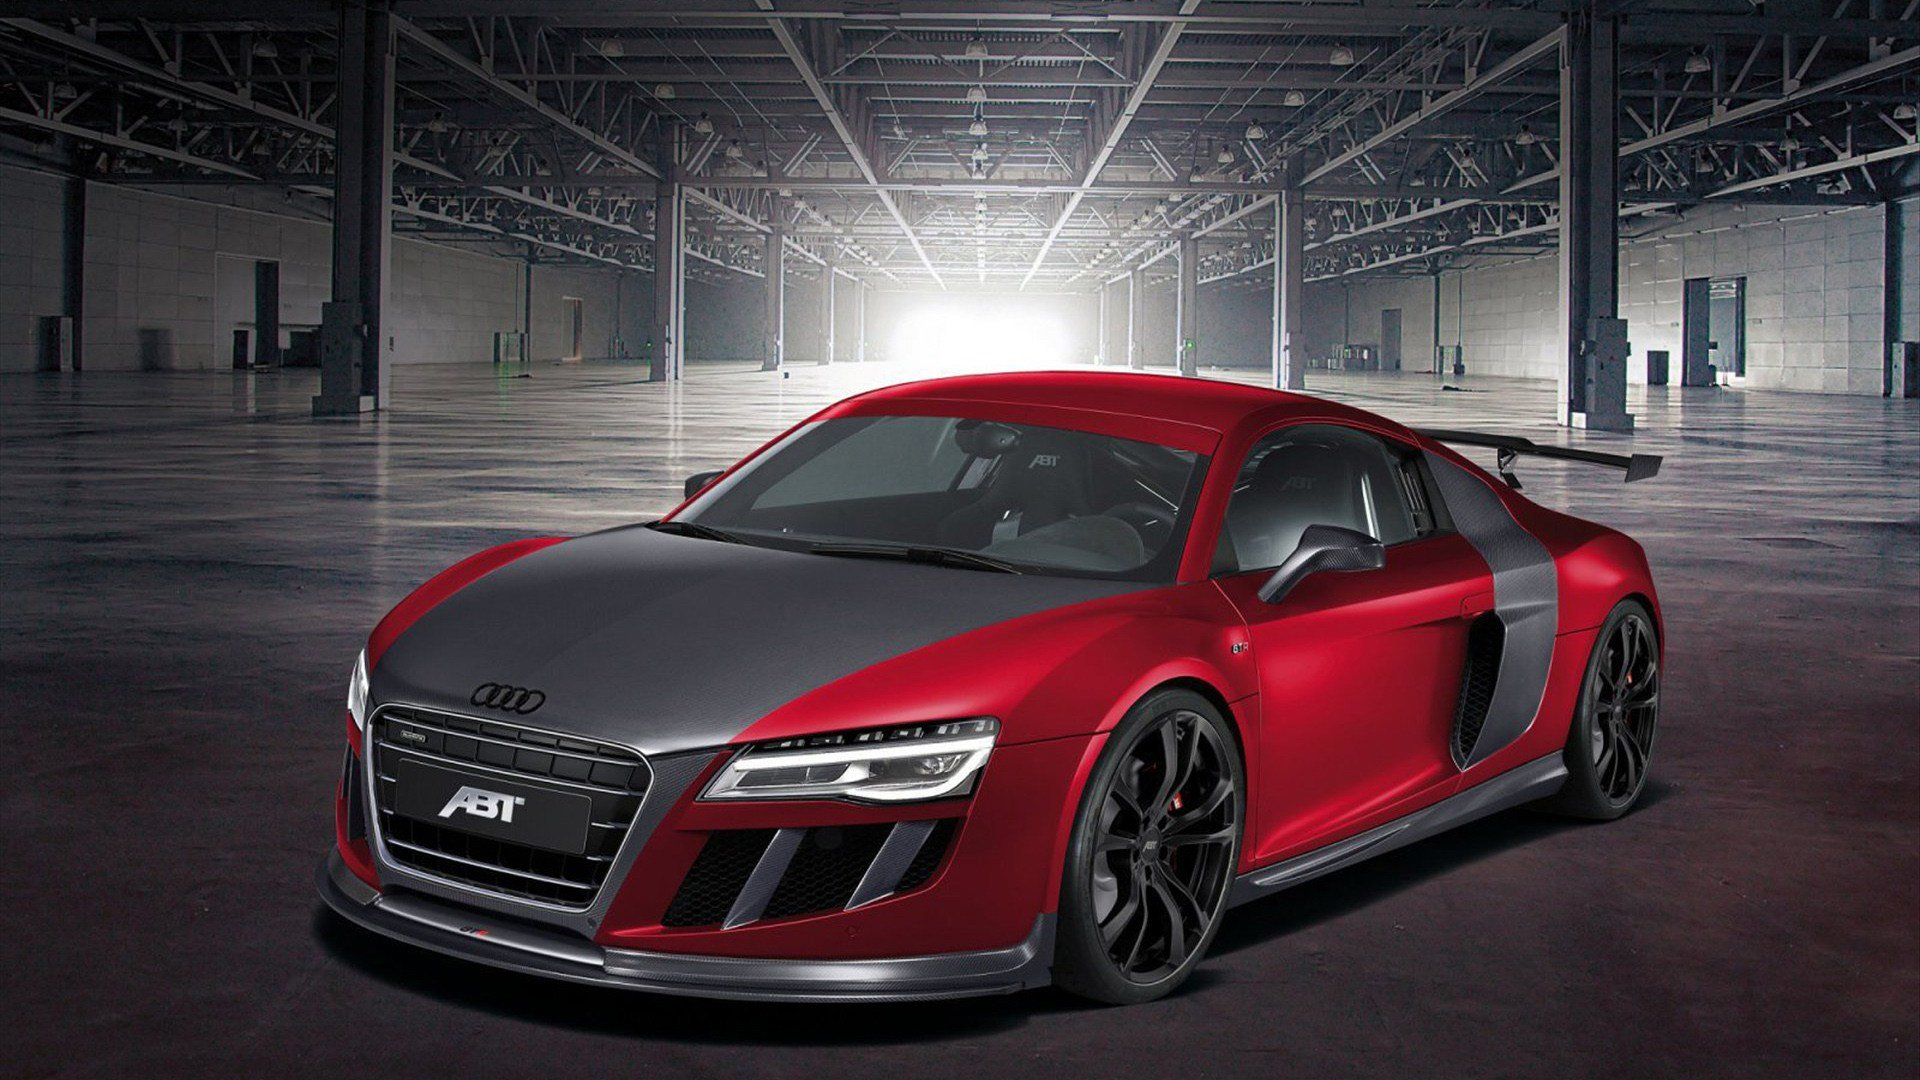 Latest Abt Audi R8 Gtr 2013 Wallpaper Hd Car Wallpapers Id 3331 Free Download